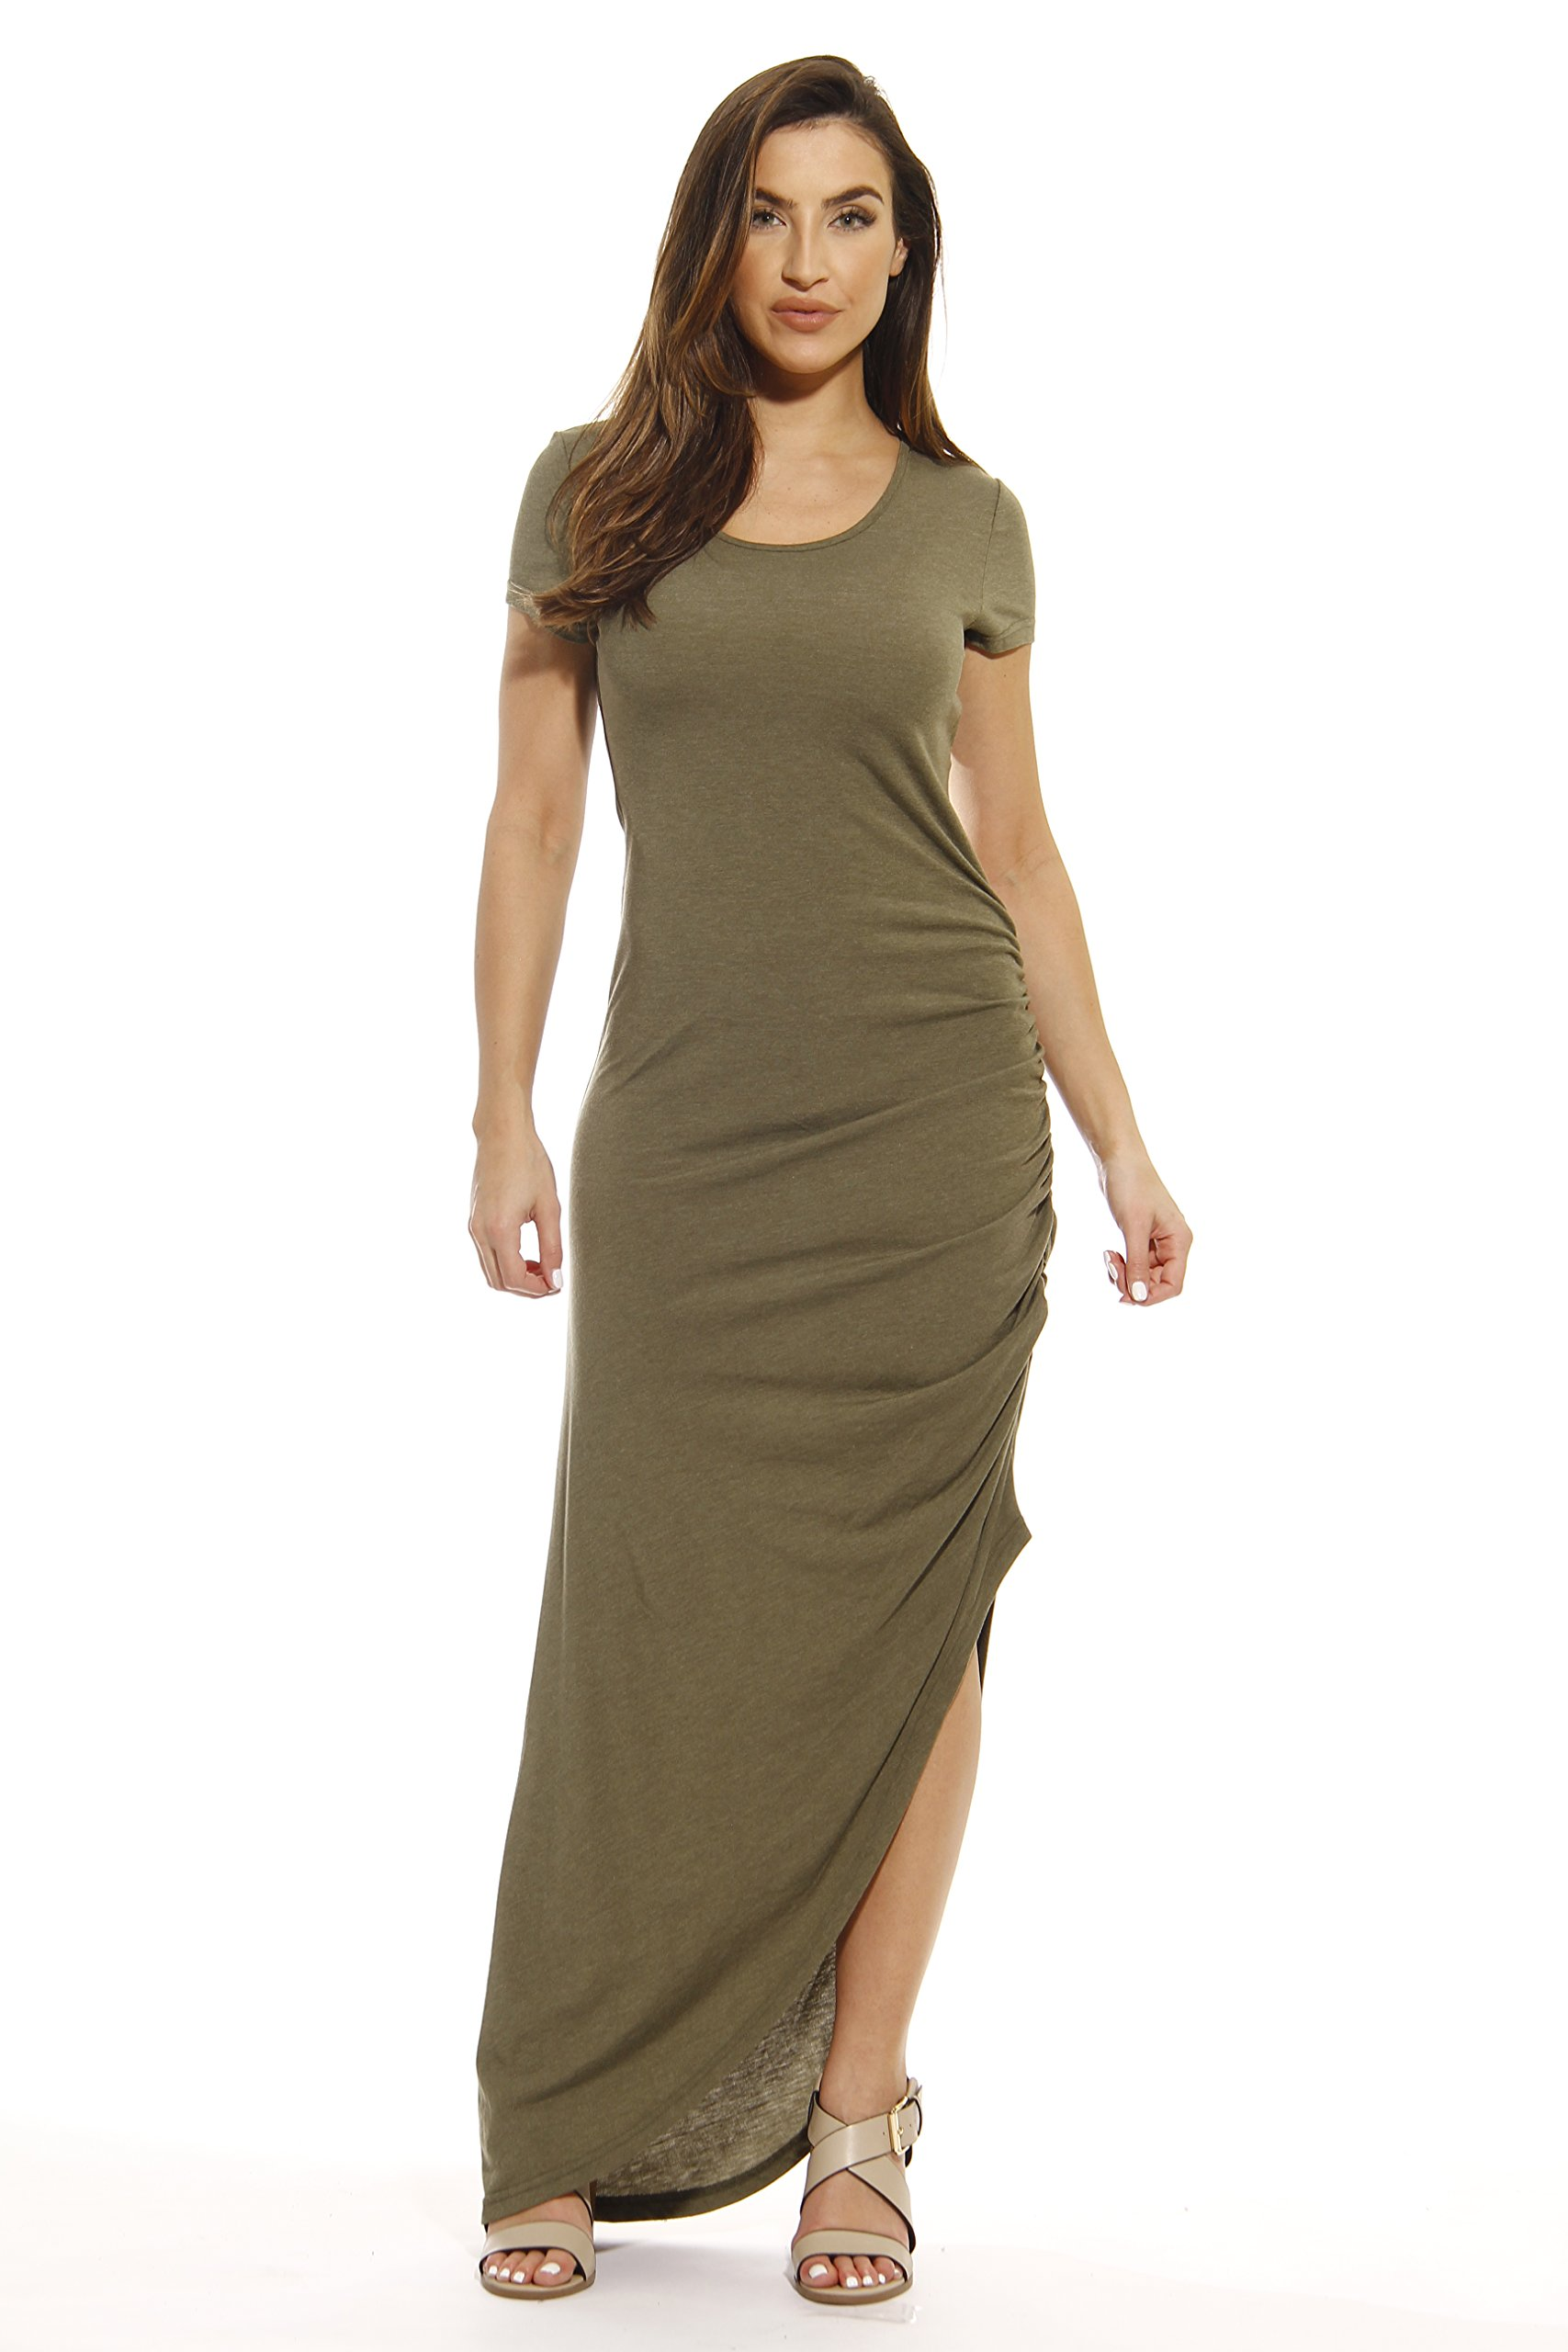 401009-GRN-3X Just Love Summer Dresses / Maxi Dress,Heathered Green,3X